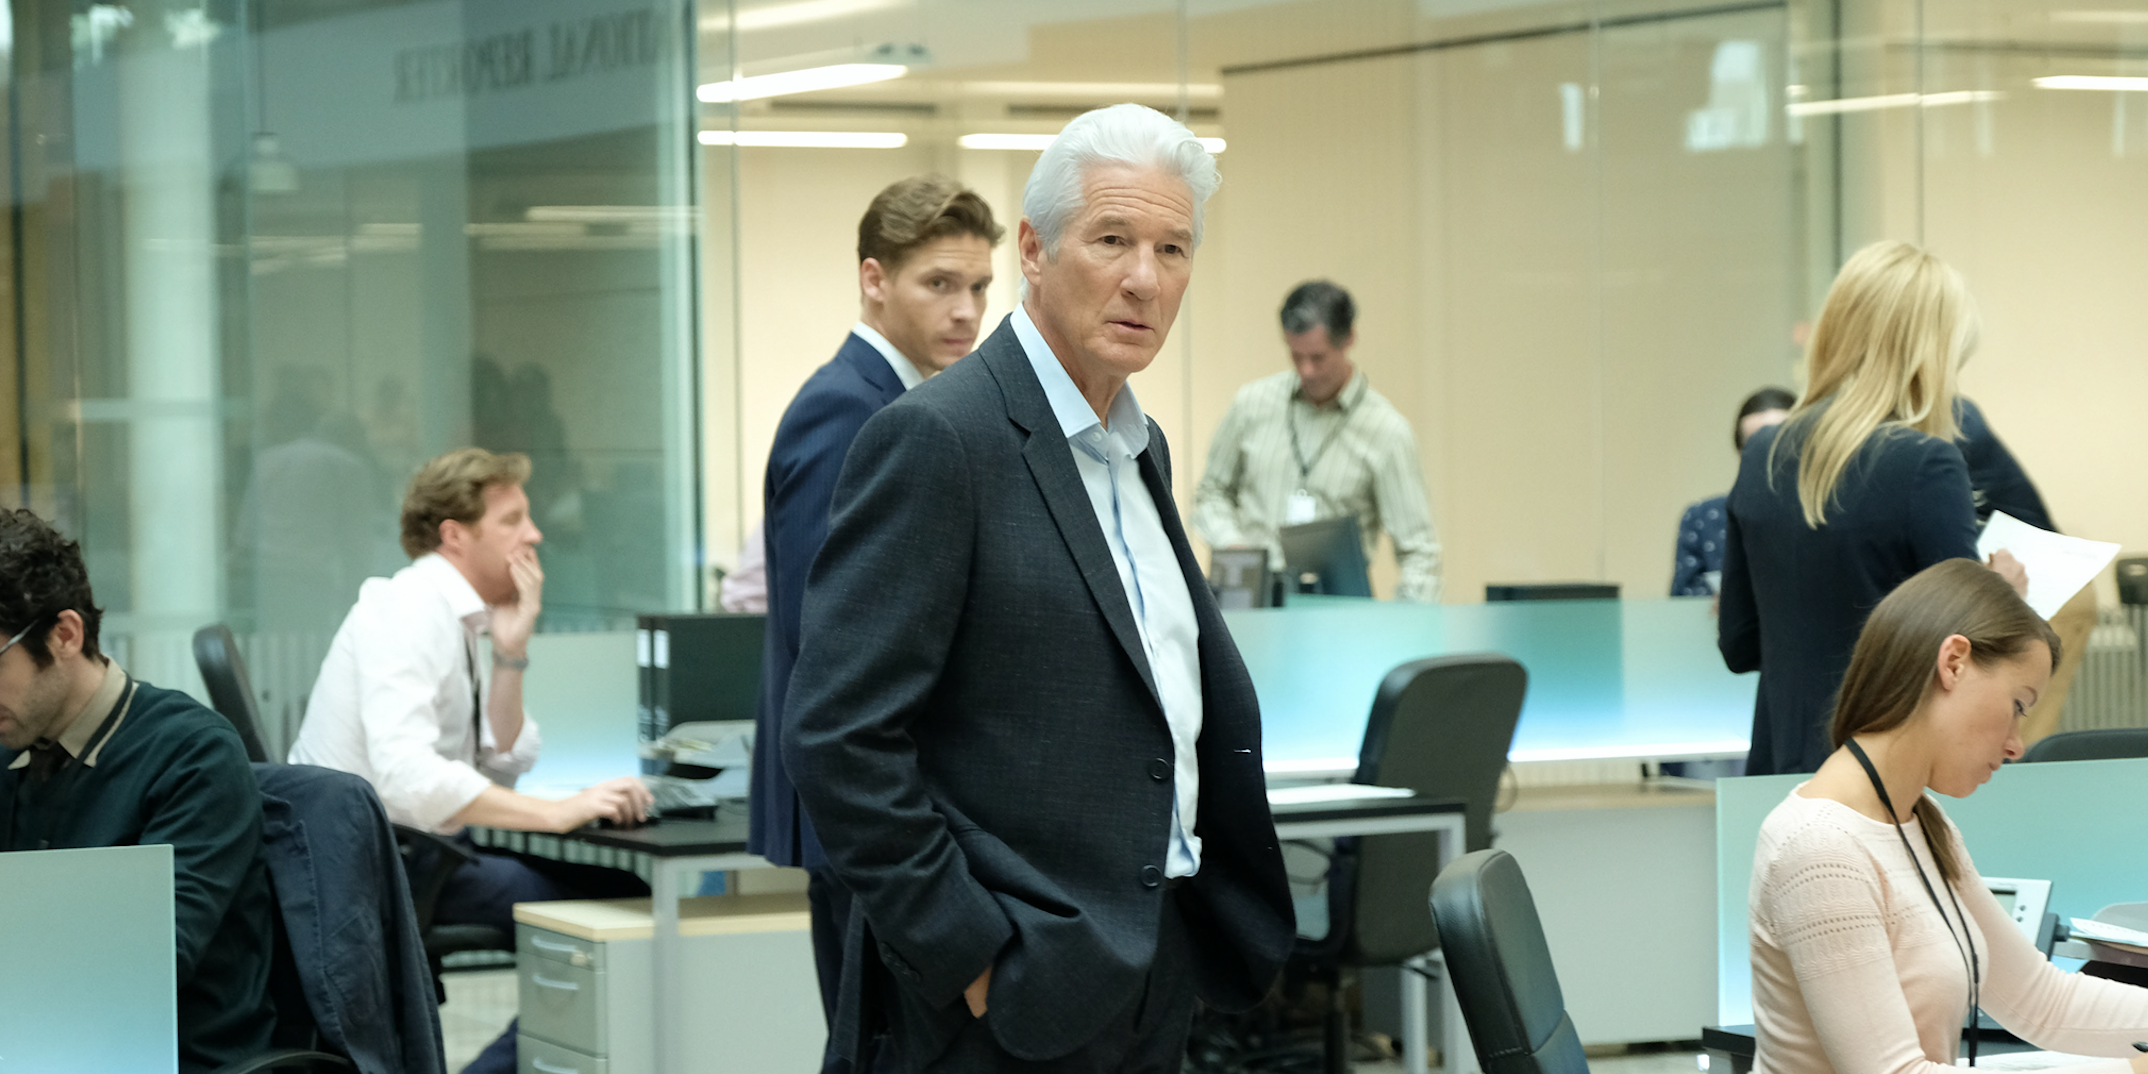 MotherFatherSon: Richard Gere (Embargoed for publication until 00:00:01 on Tuesday 26/02/2019)